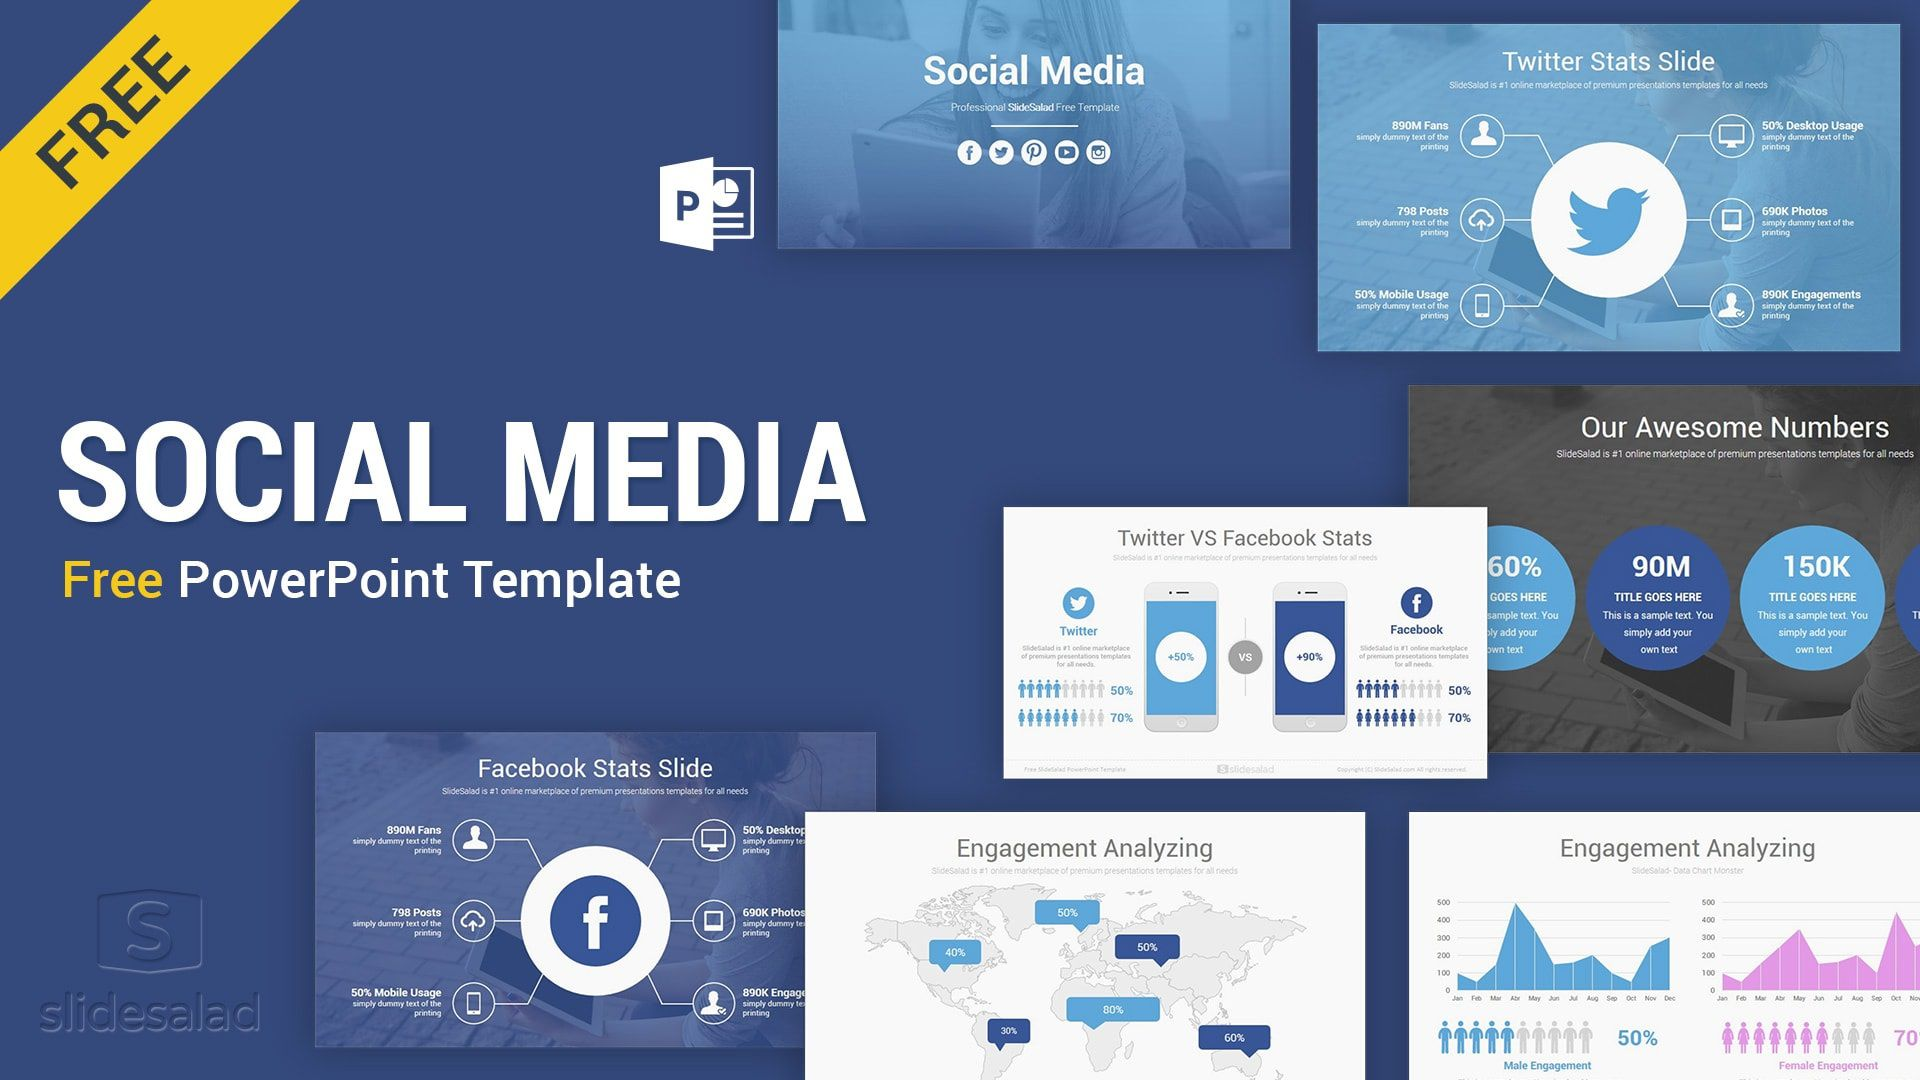 003 Fascinating Social Media Powerpoint Template Picture  Templates Report Free Social-media-marketing-powerpoint-templateFull